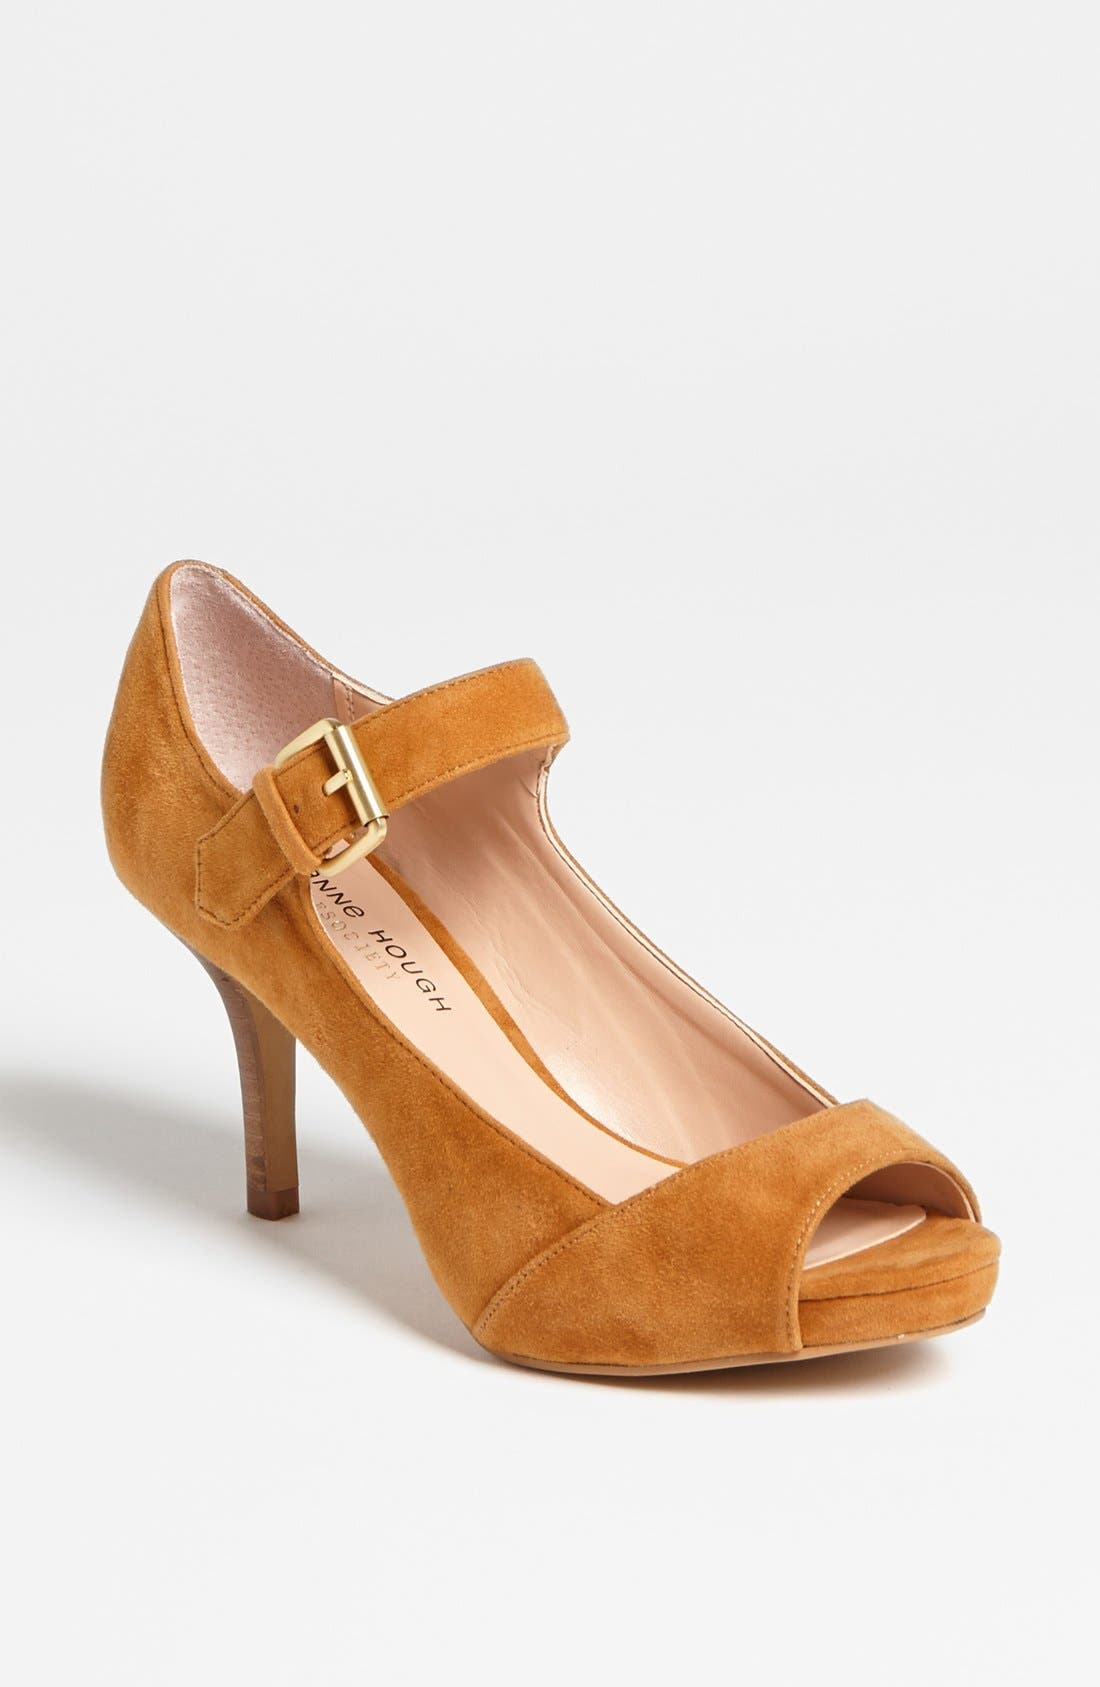 Alternate Image 1 Selected - Julianne Hough for Sole Society 'Jaylene' Pump